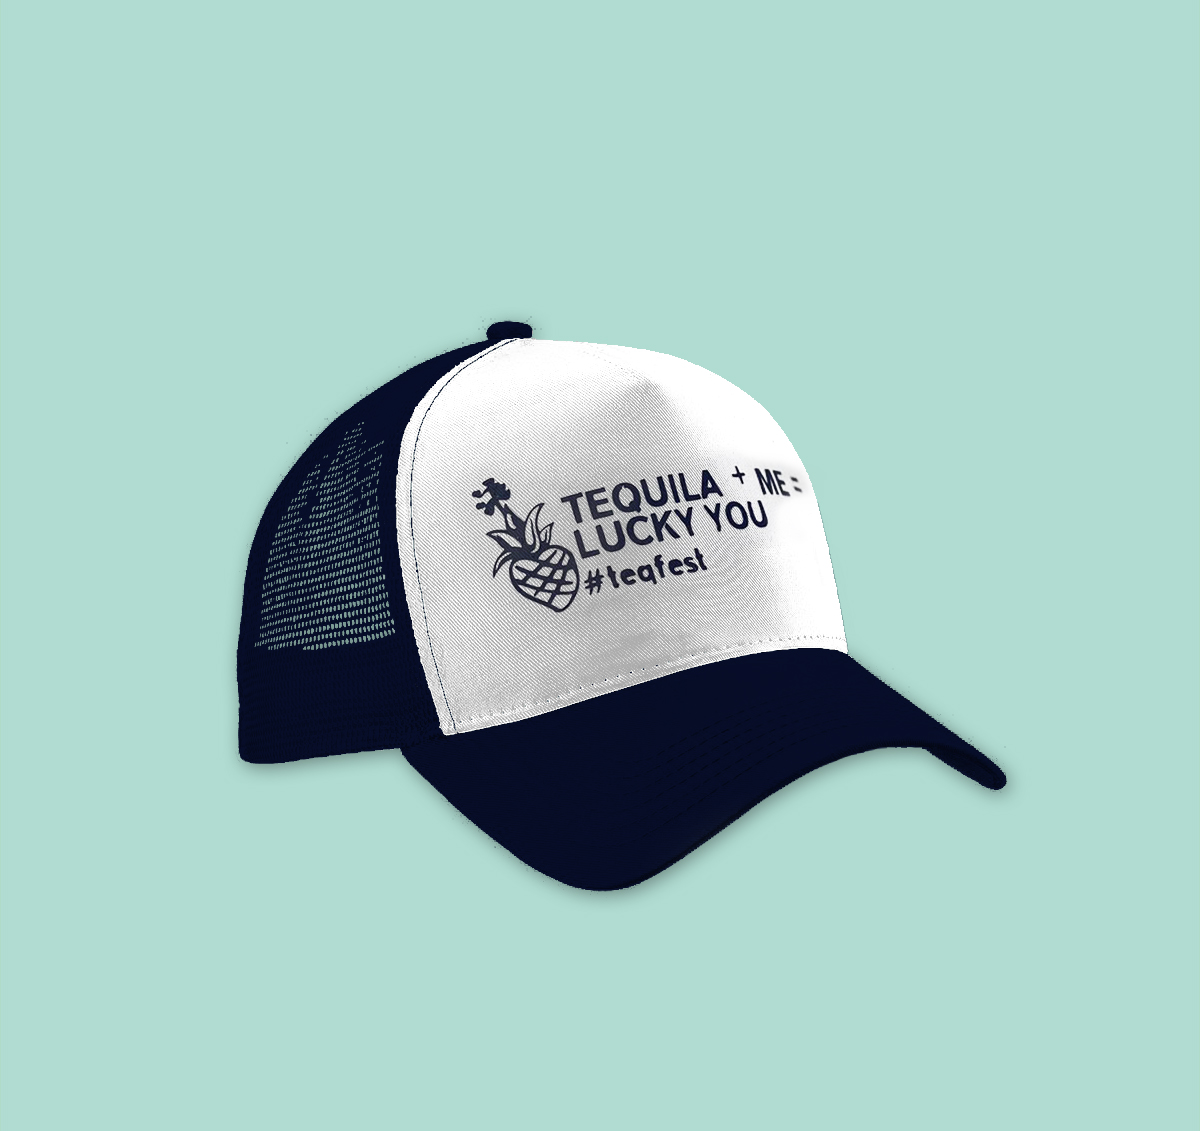 tequilafest london lucky you cap